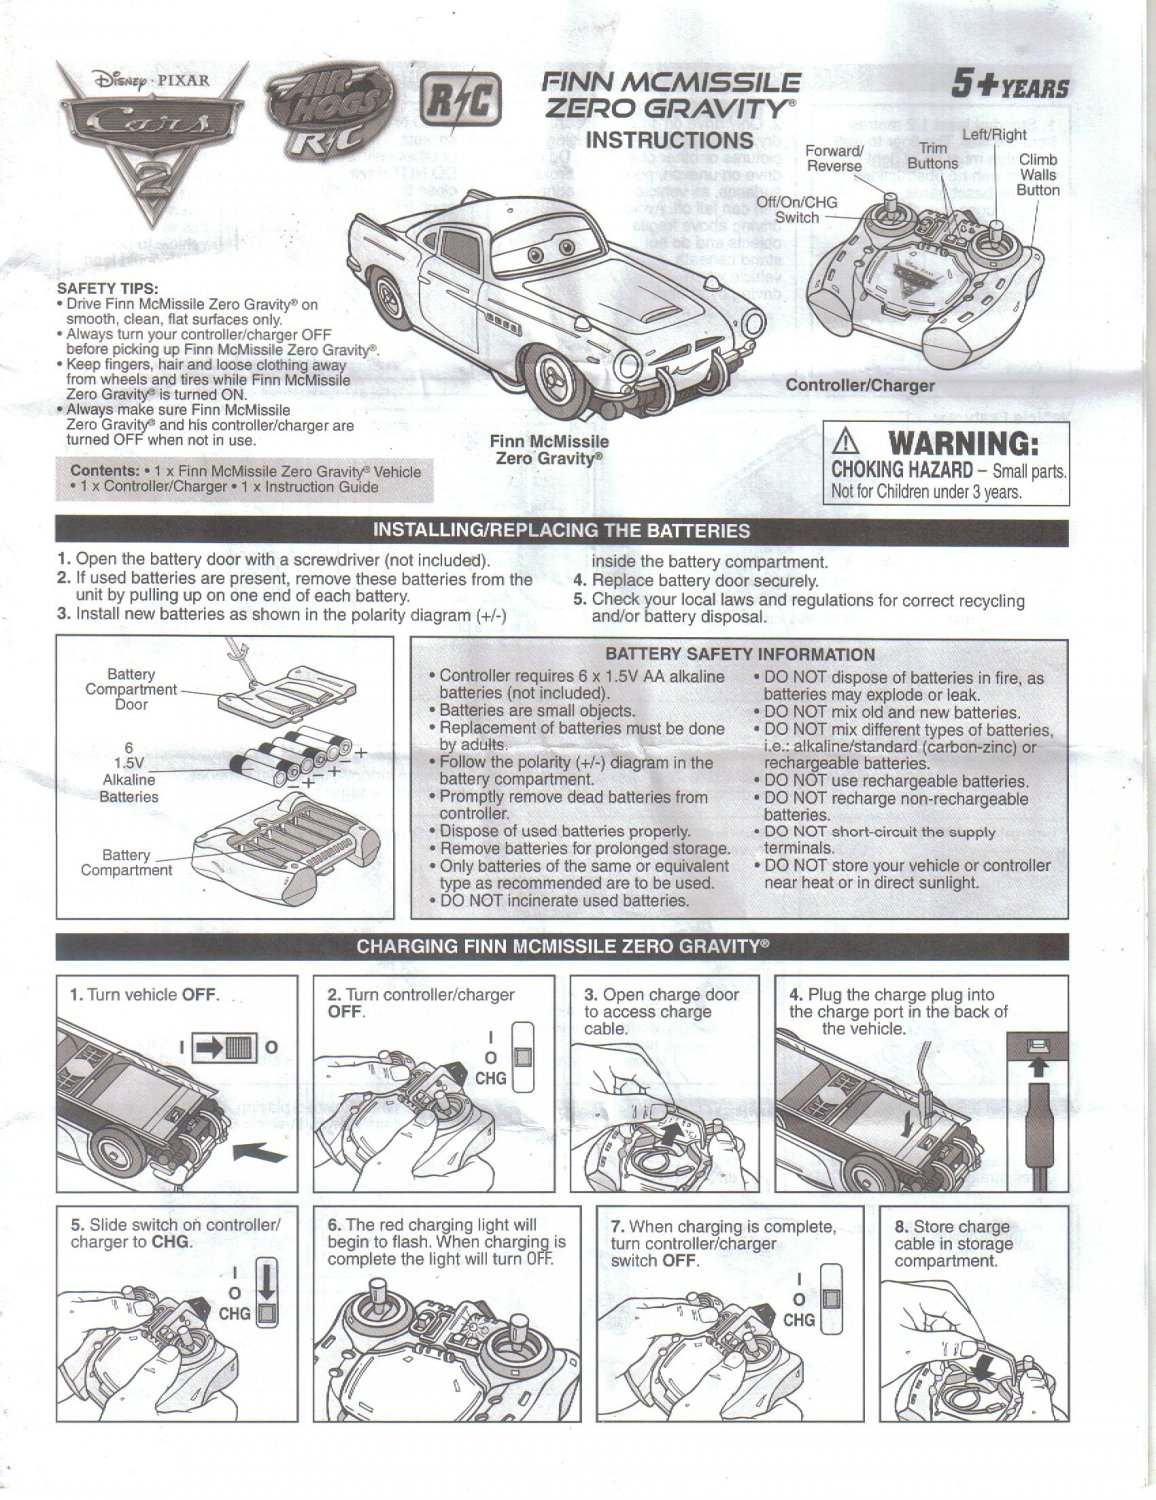 Car Instruction Manual New Cars Used Cars Car Reviews And Pricing